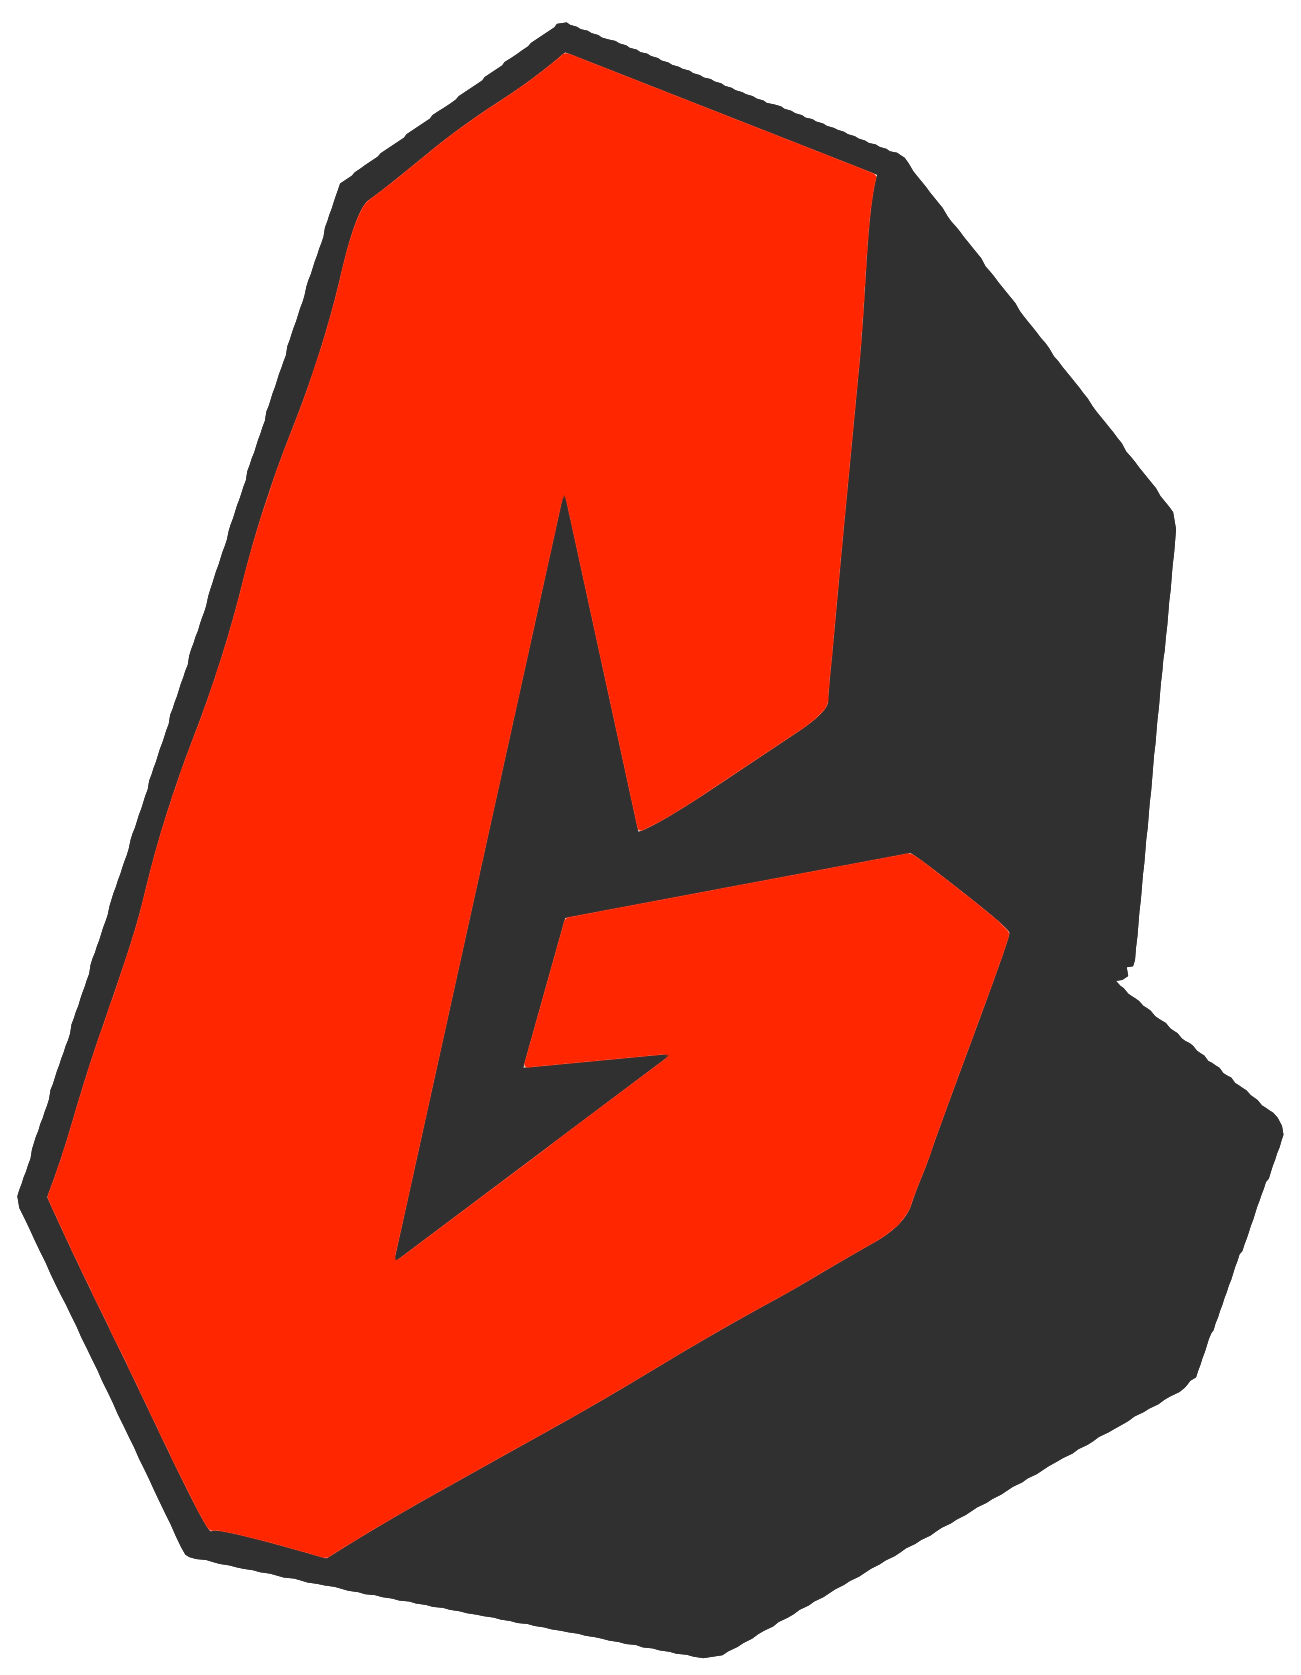 G (light lead:red).png